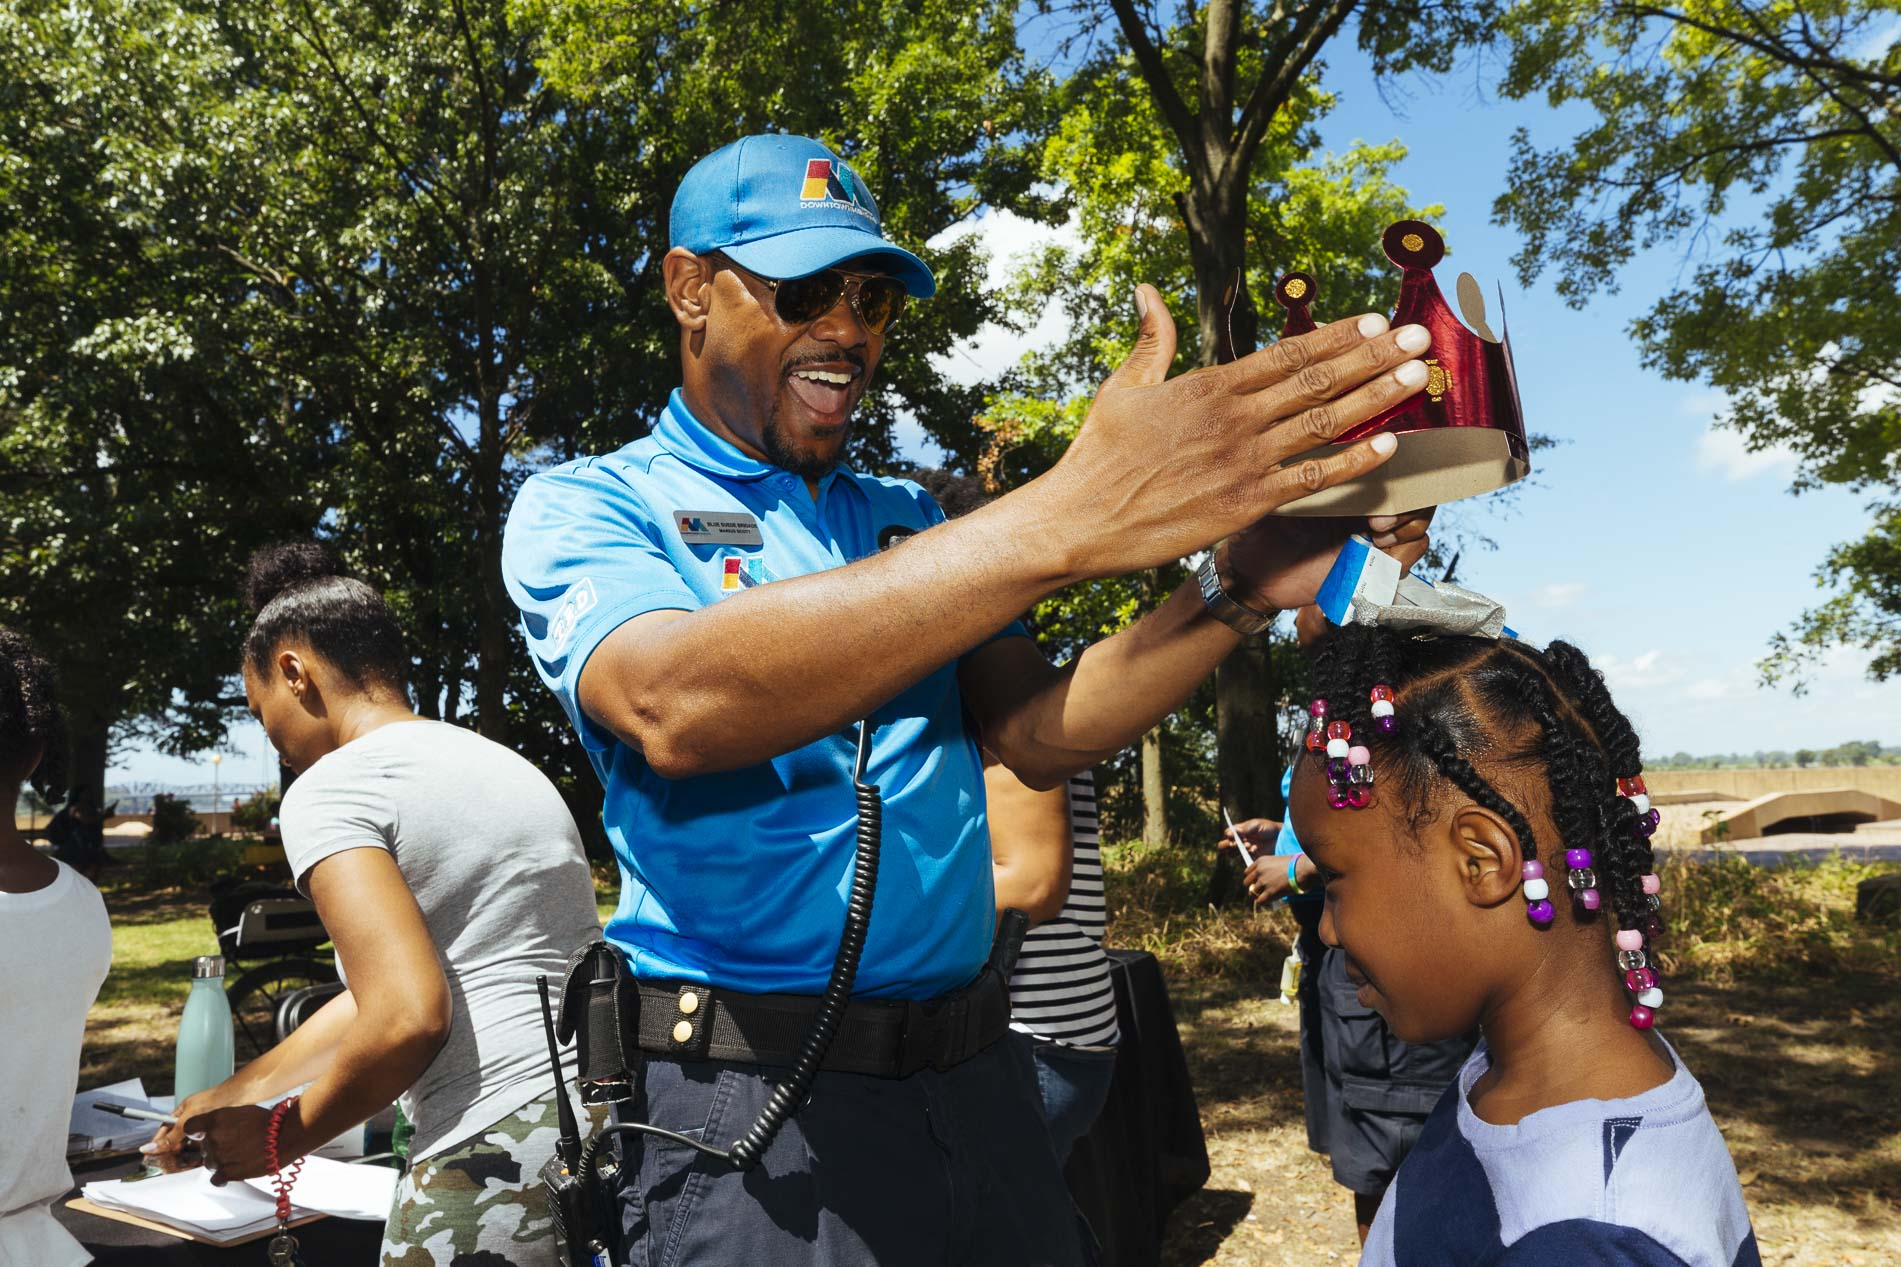 Blue Suede brigade member interacting with child on Mud Island River Park, Downtown Memphis